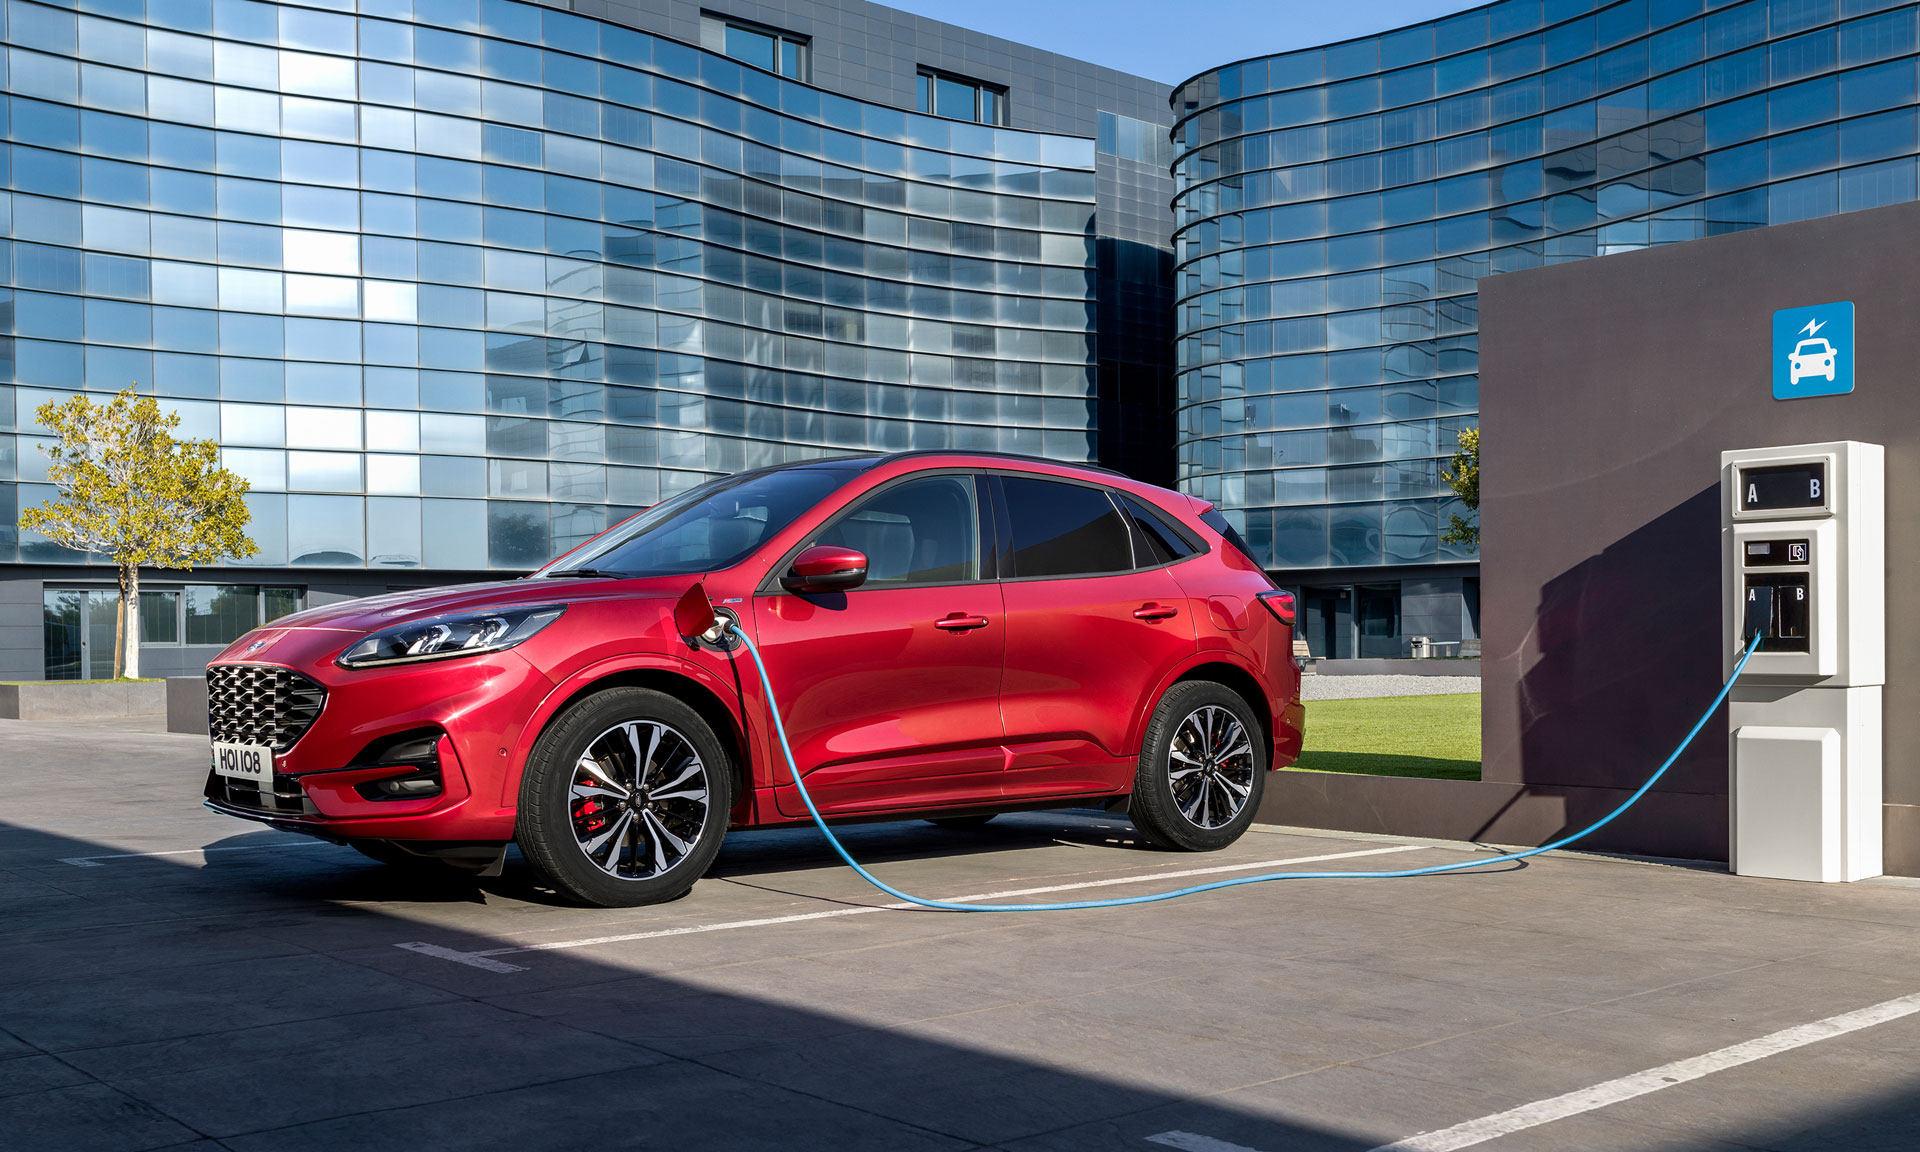 Ford Kuga recall: plug-in hybrid model a potential fire risk – Which? News